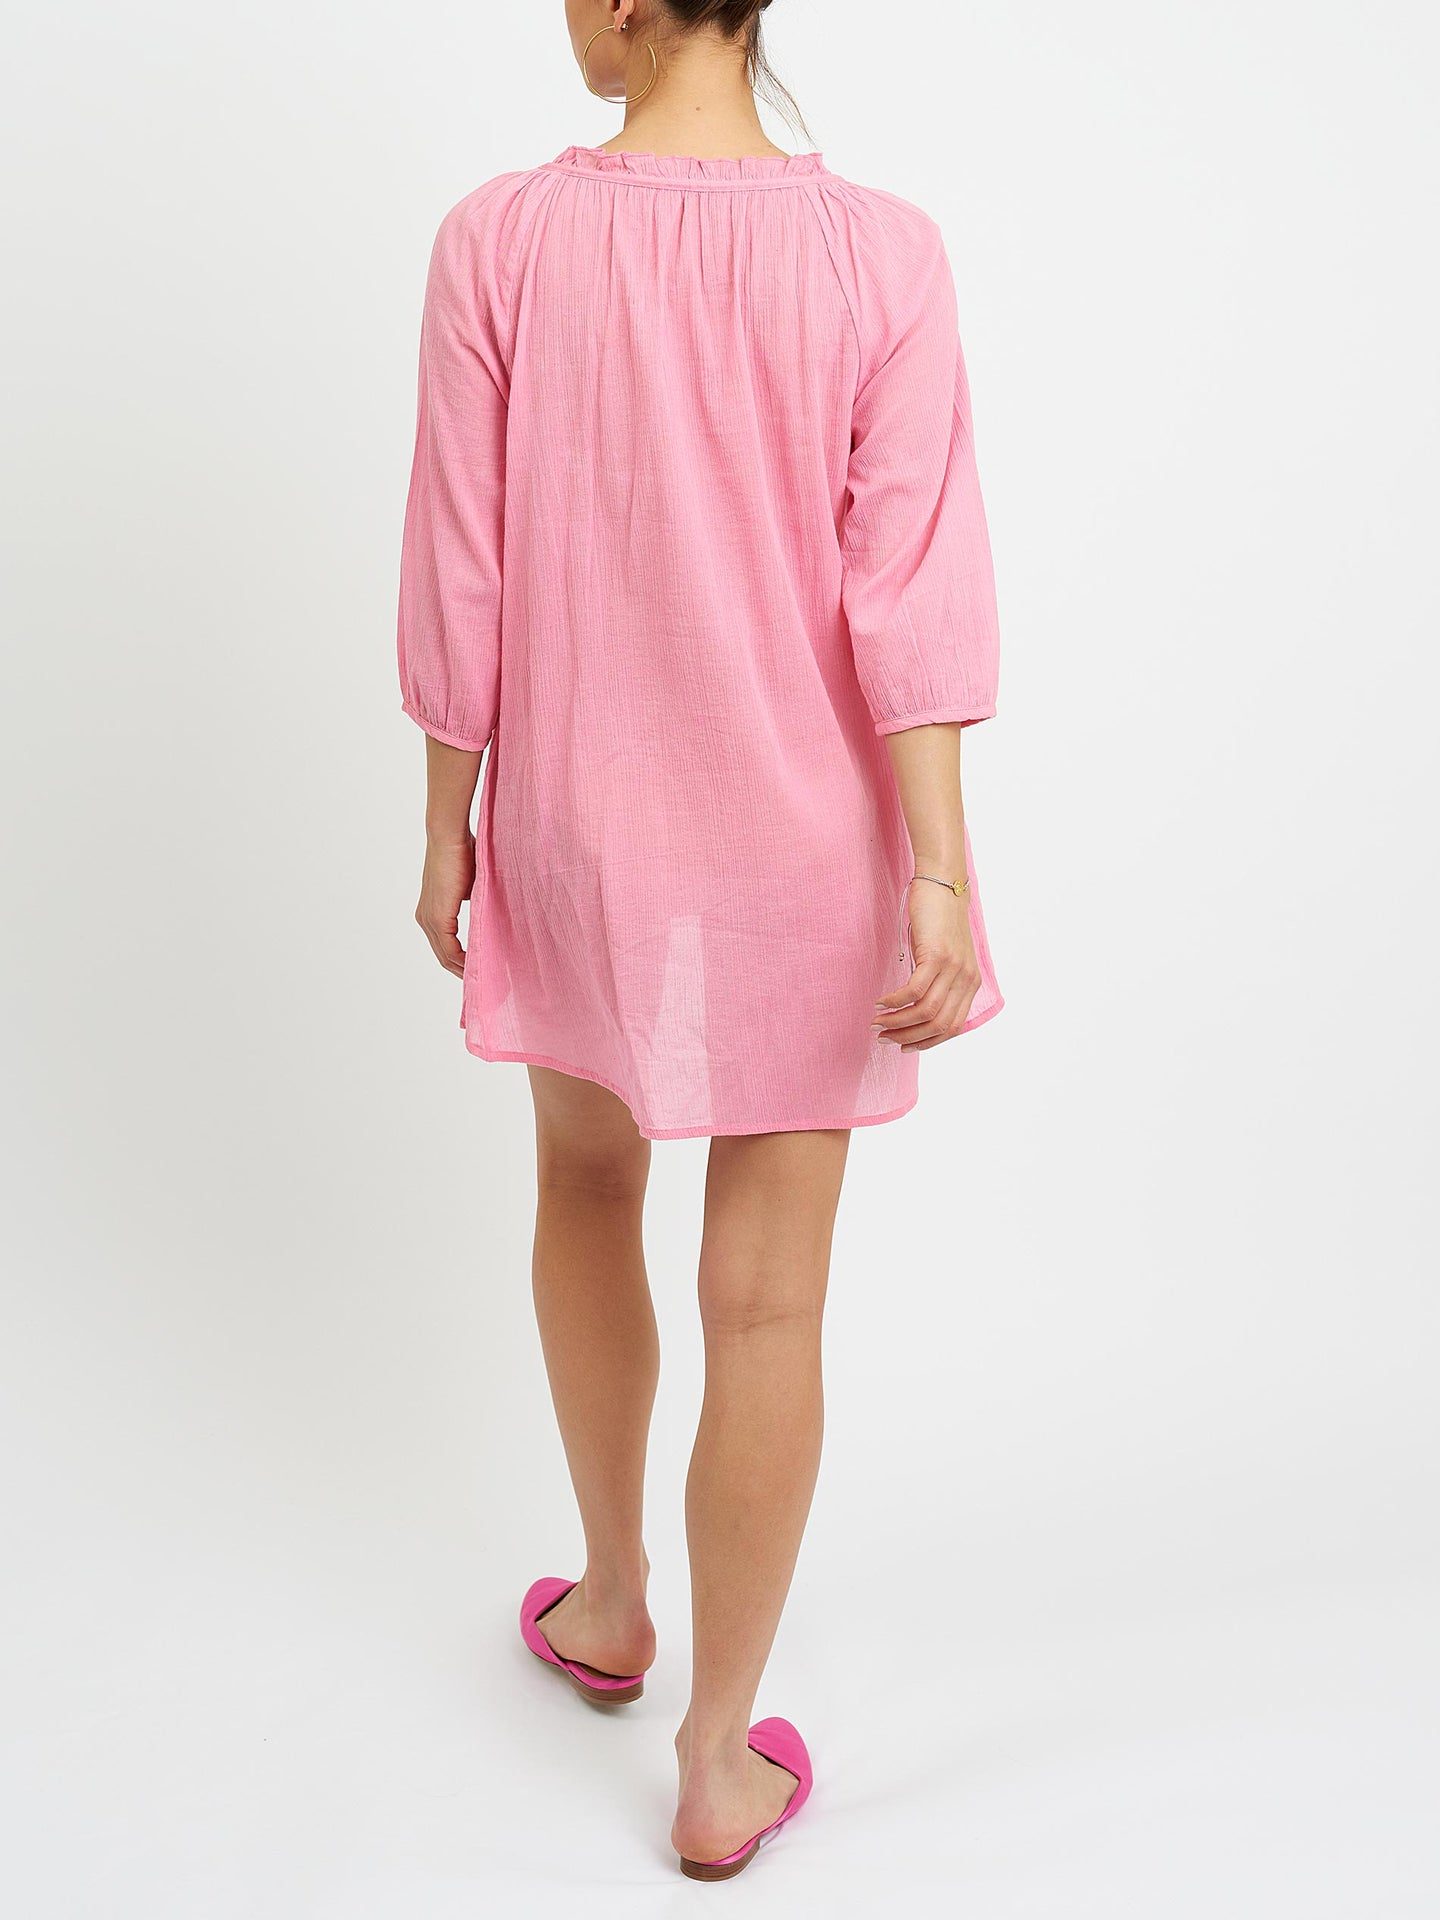 Rosie cheesecloth blouse pink